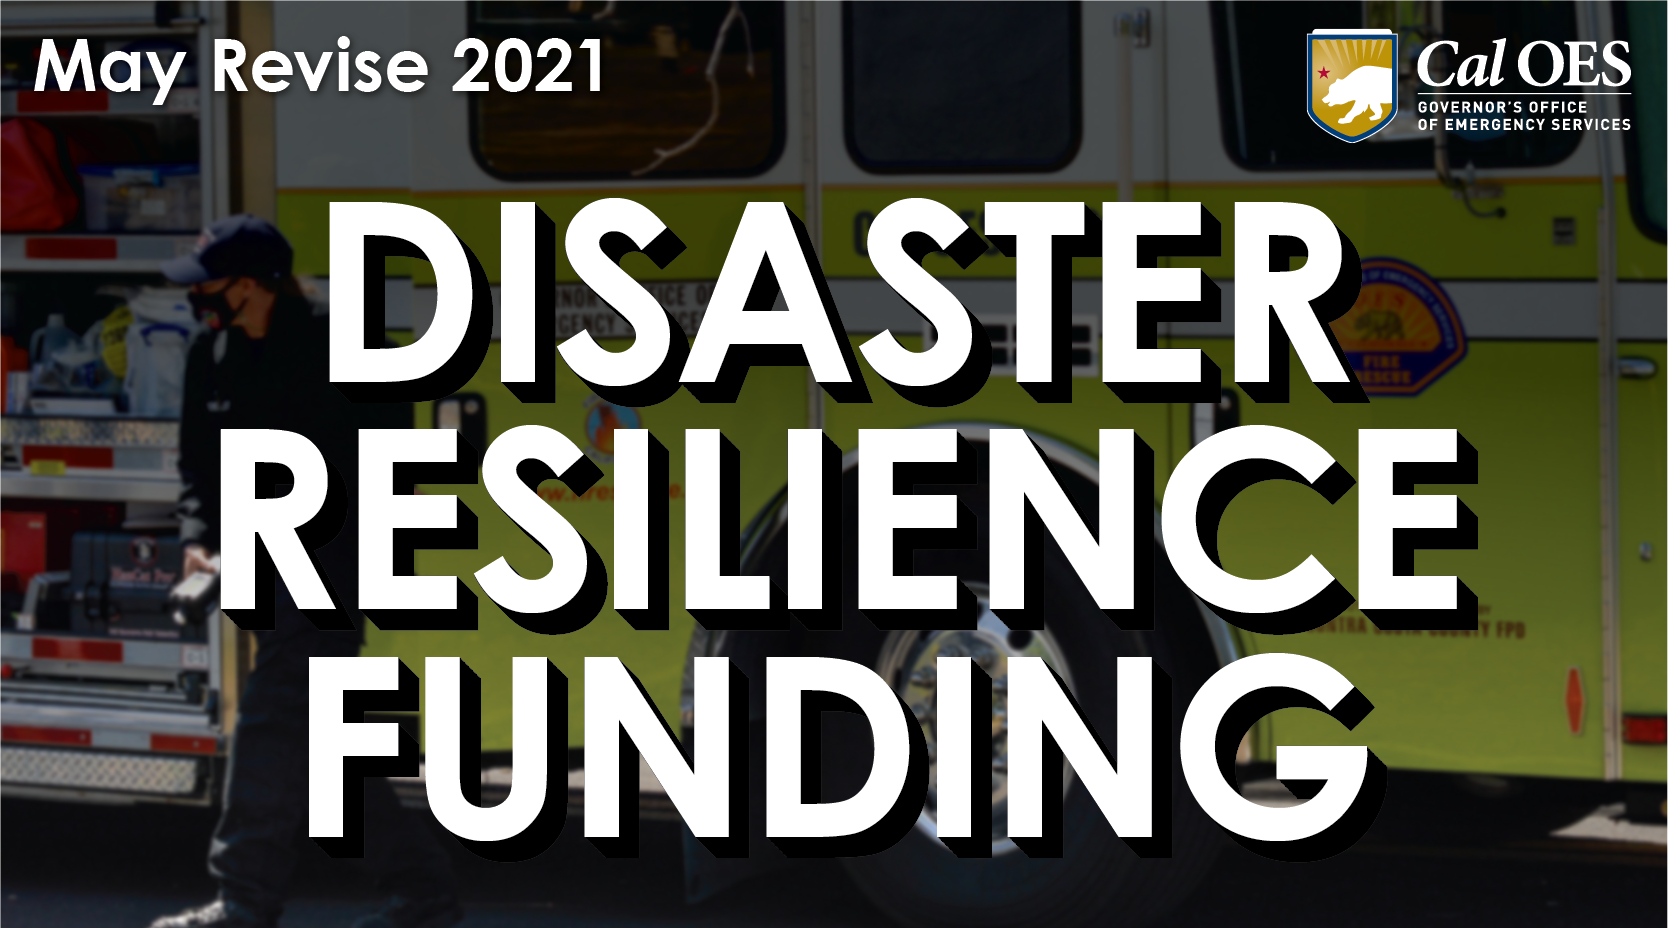 VIDEO EXPLAINER: Emergency Services and Disaster Resilience Prioritized in Governor Newsom's Budget